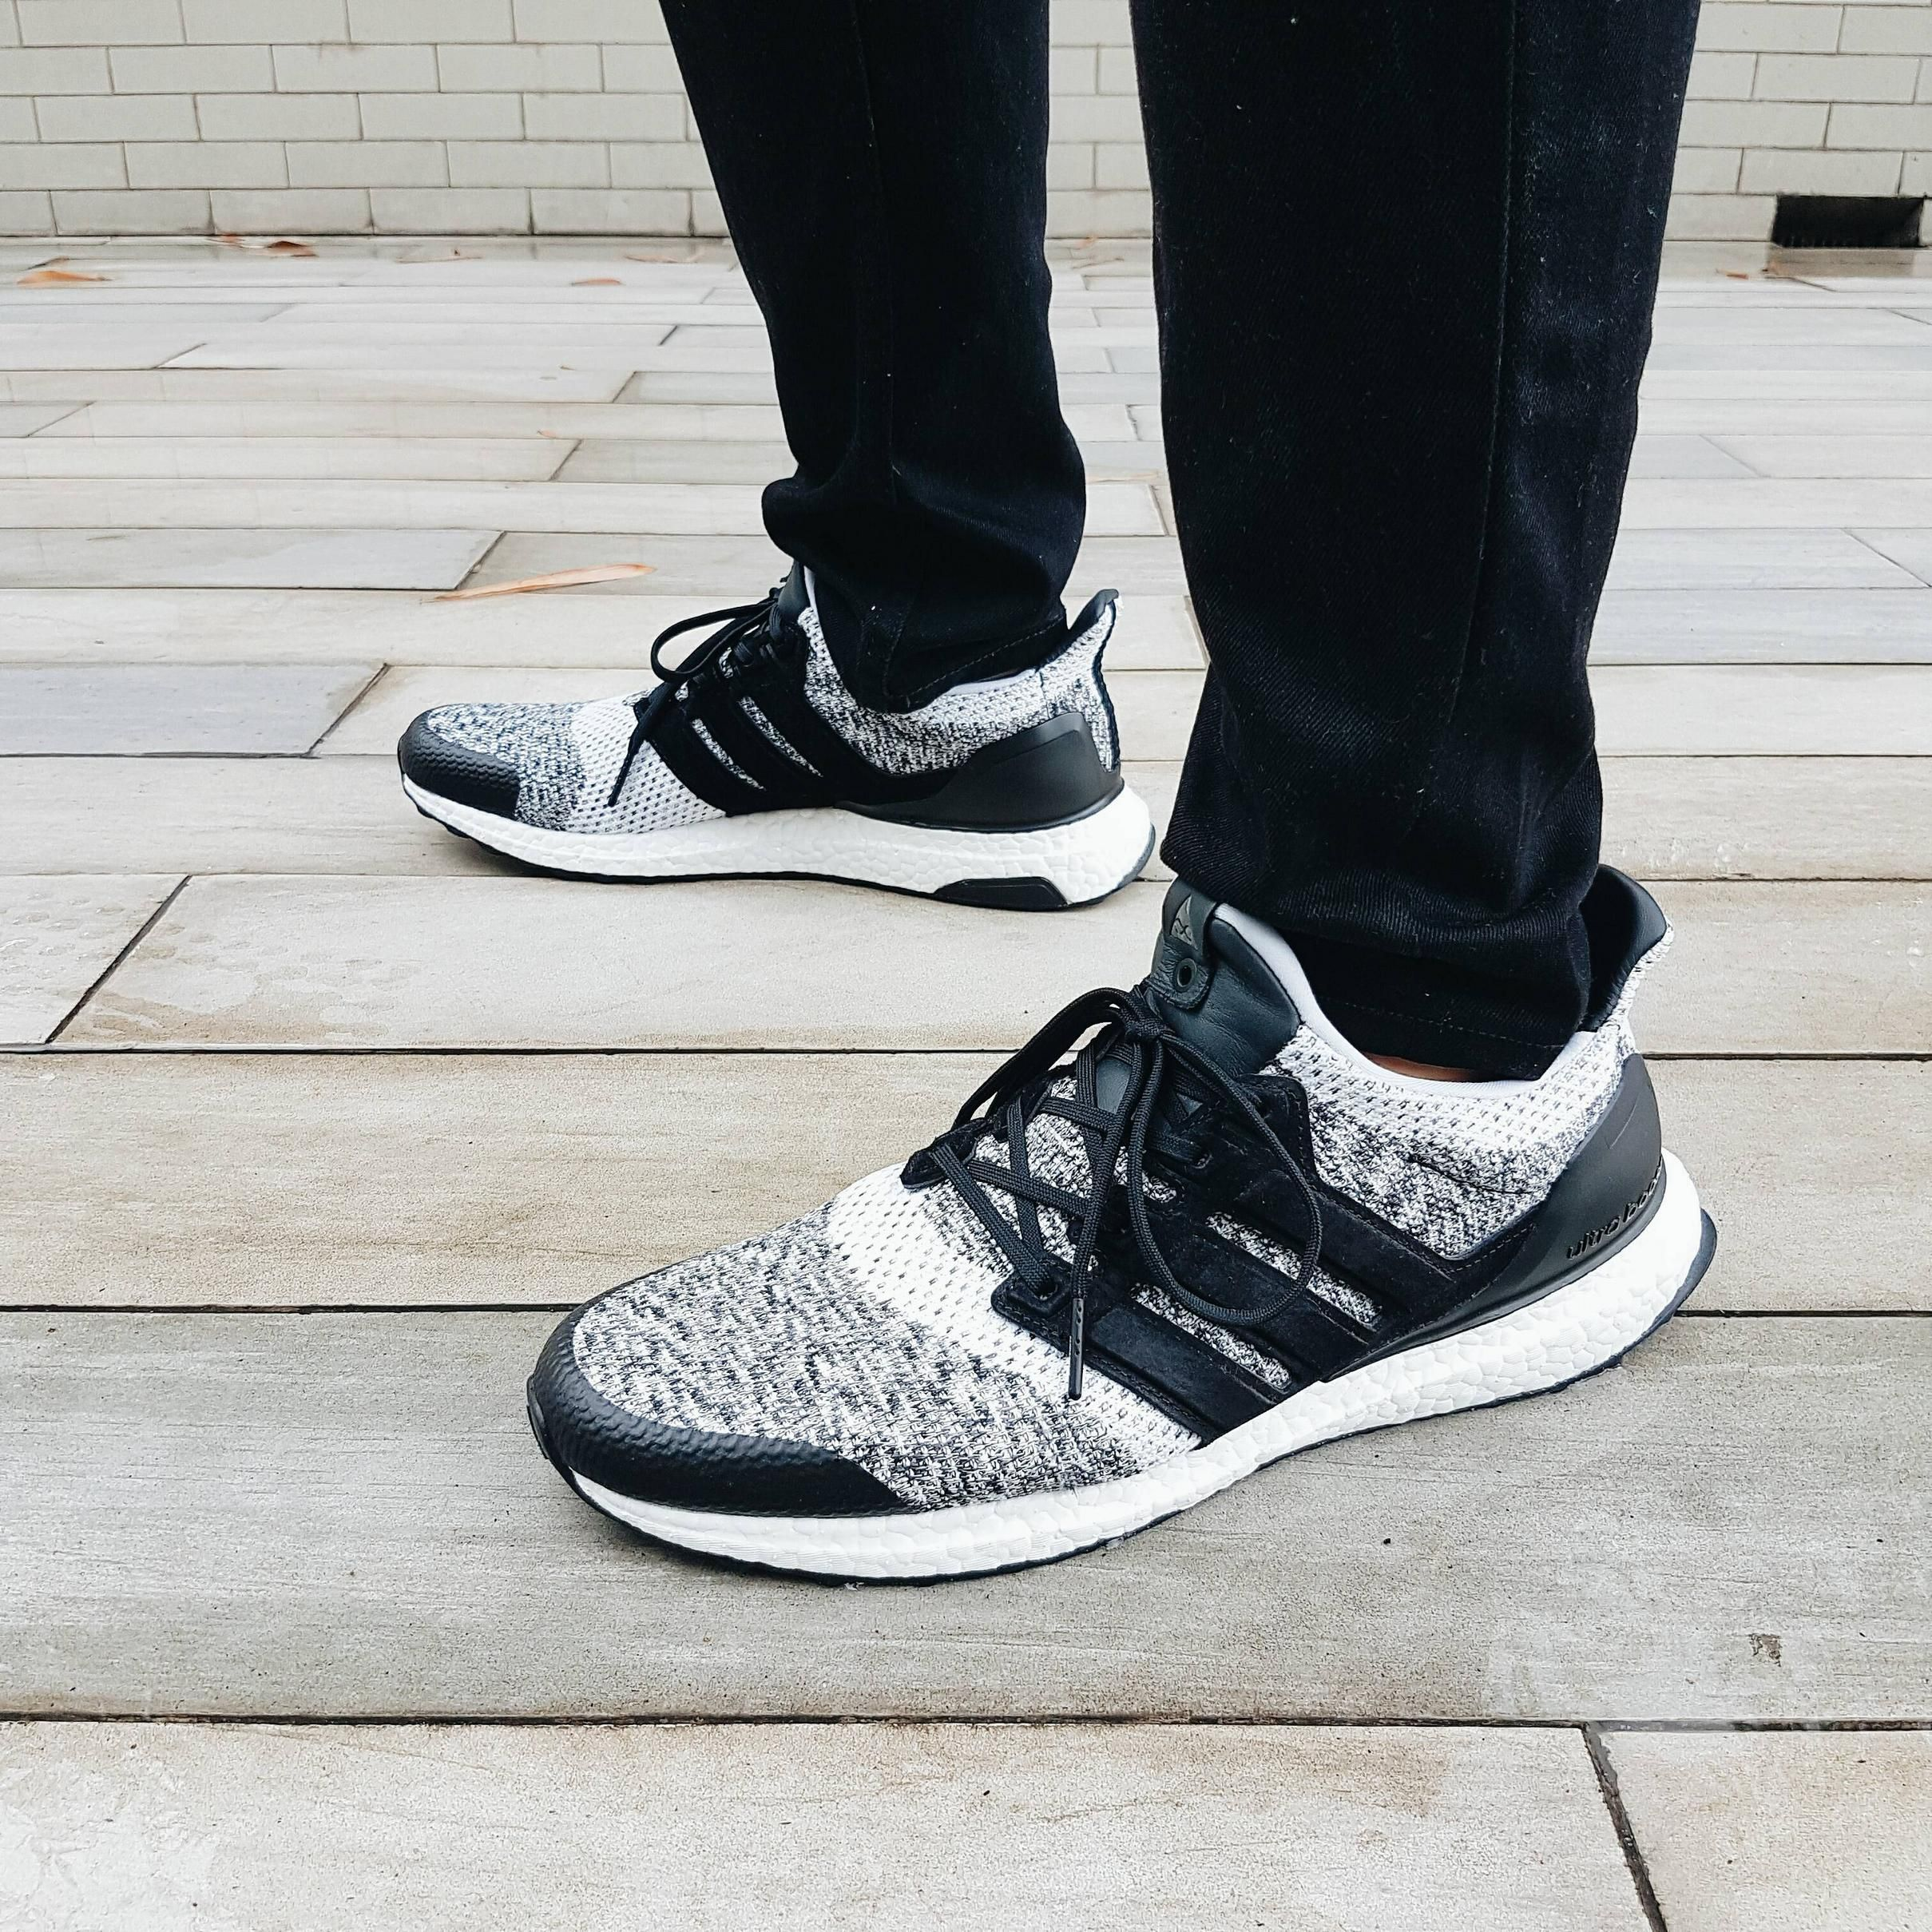 premium selection 0a3a4 e9018 SNS Ultraboost on feet | ultraboost in 2019 | Sneakers ...